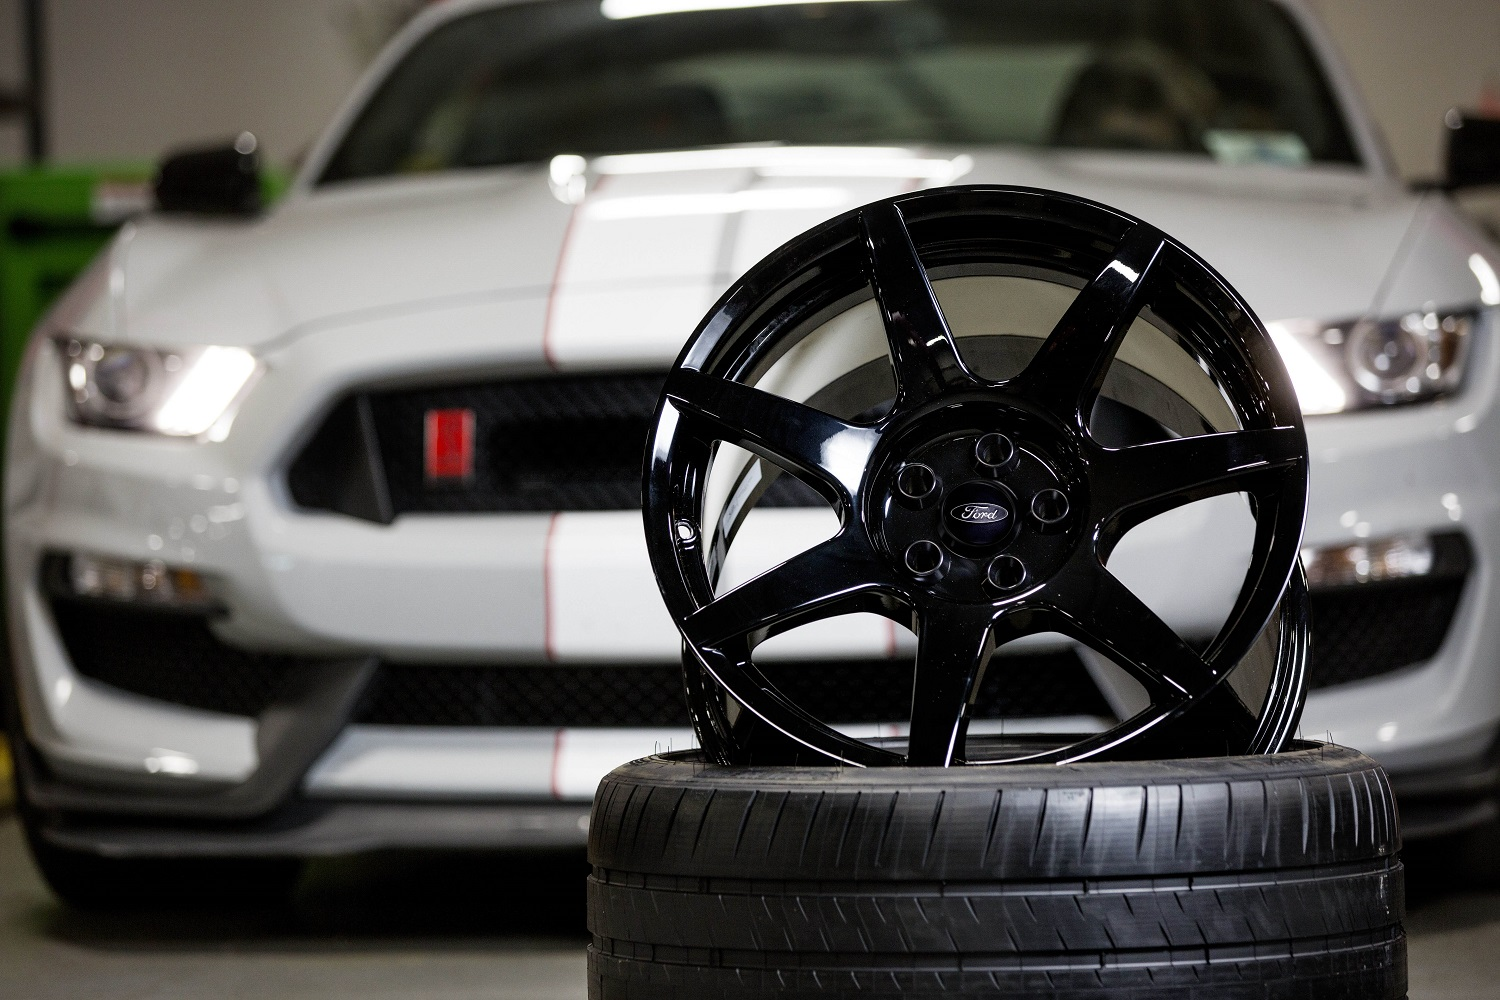 The Shelby GT530R features the world's first mass-produced carbon fiber wheels. Ford is the first major automaker to offer carbon fiber wheels as standard equipment.